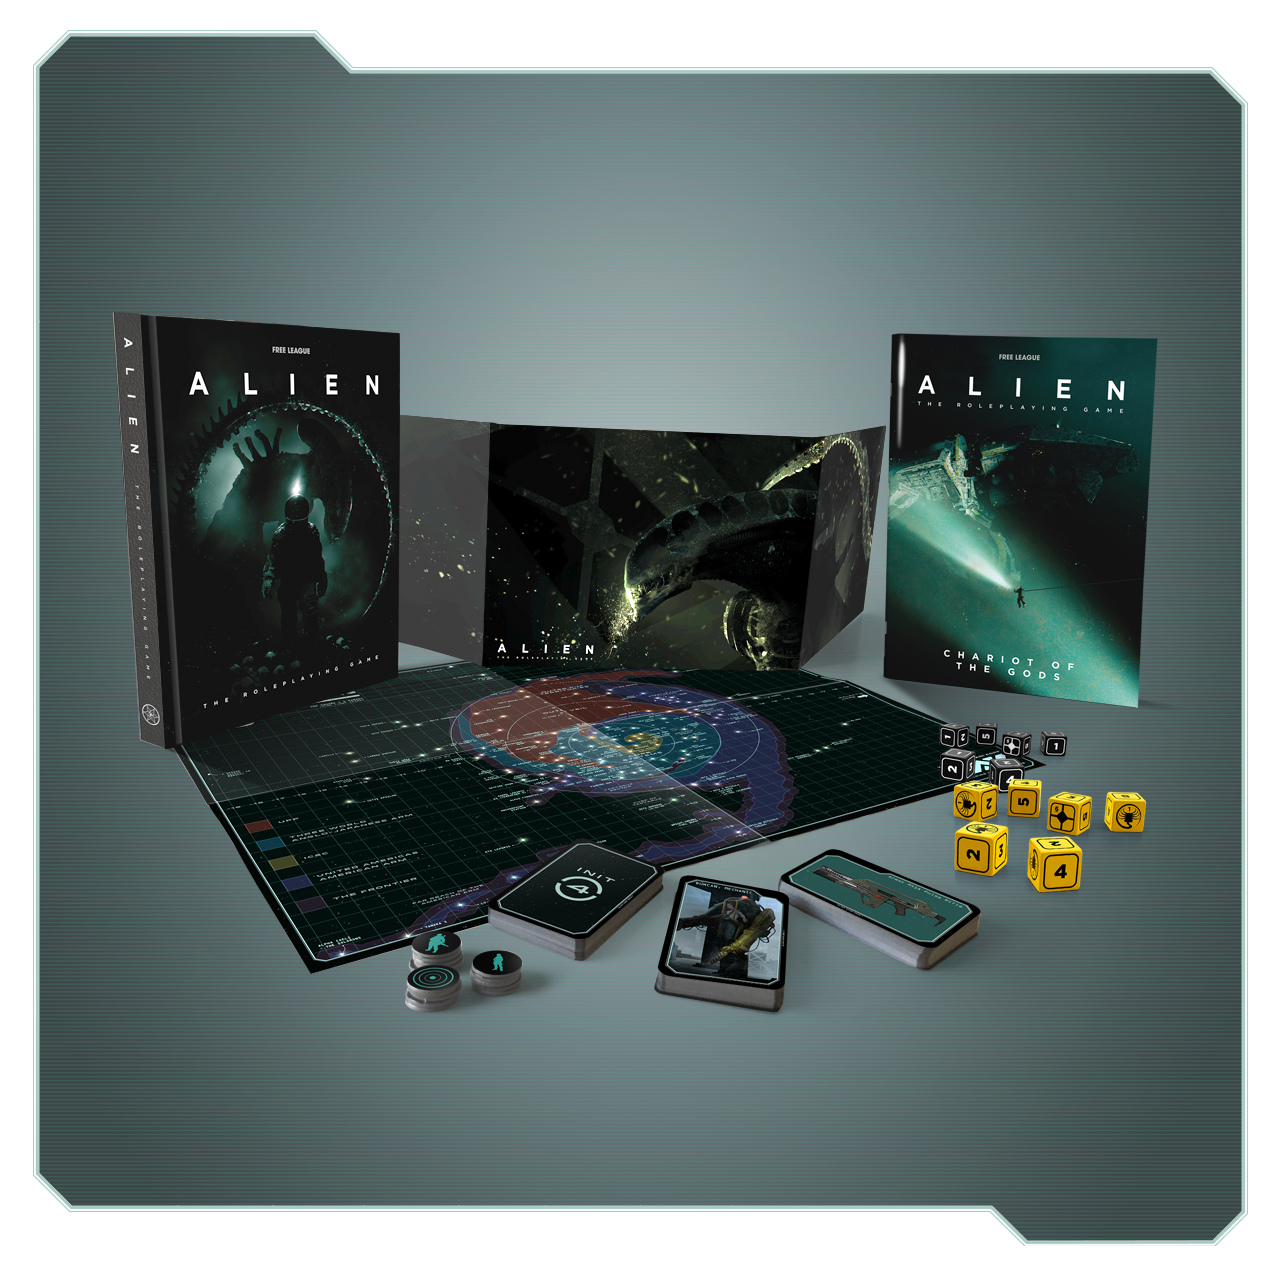 ALIEN RPG BUNDLE